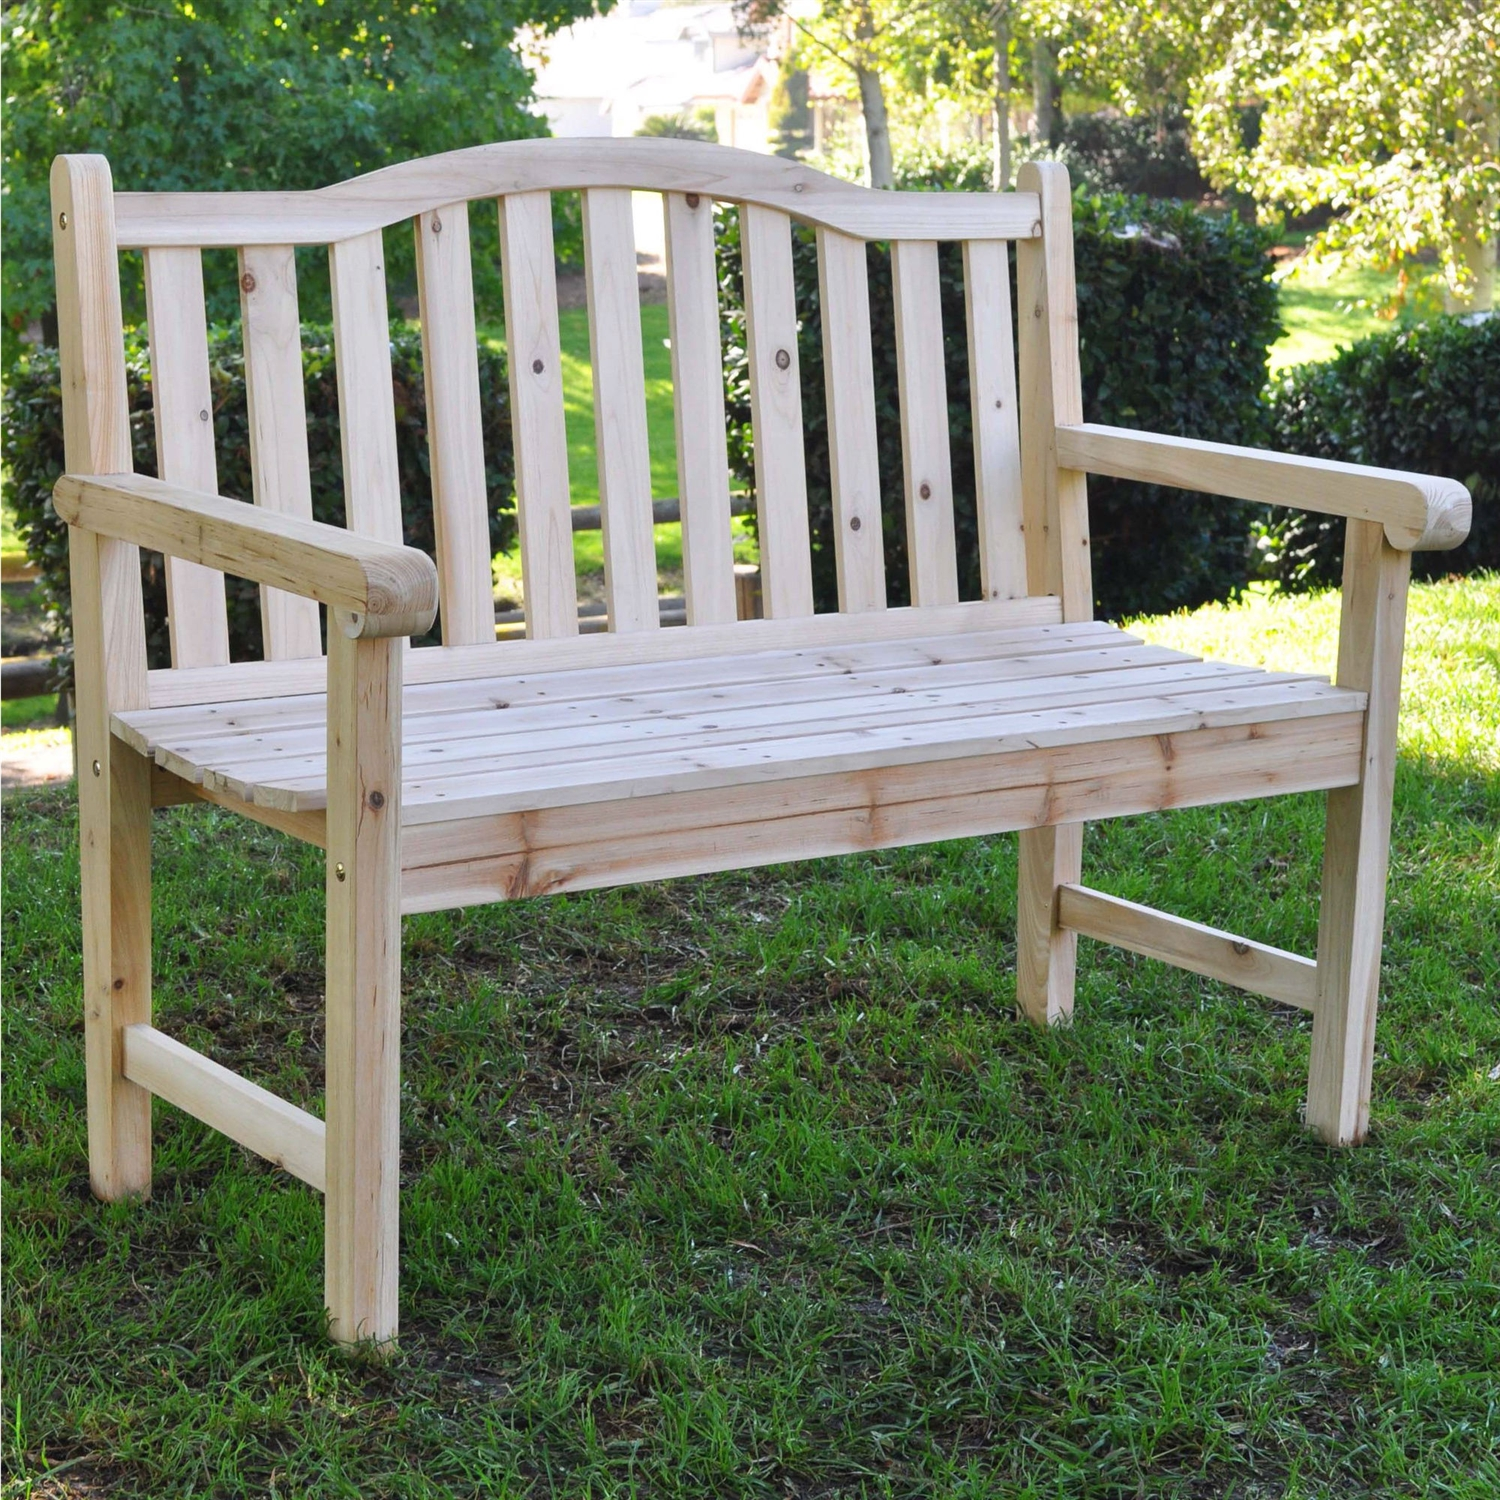 Outdoor Cedar Wood Garden Bench in Natural with 475lbs. Weight Limit